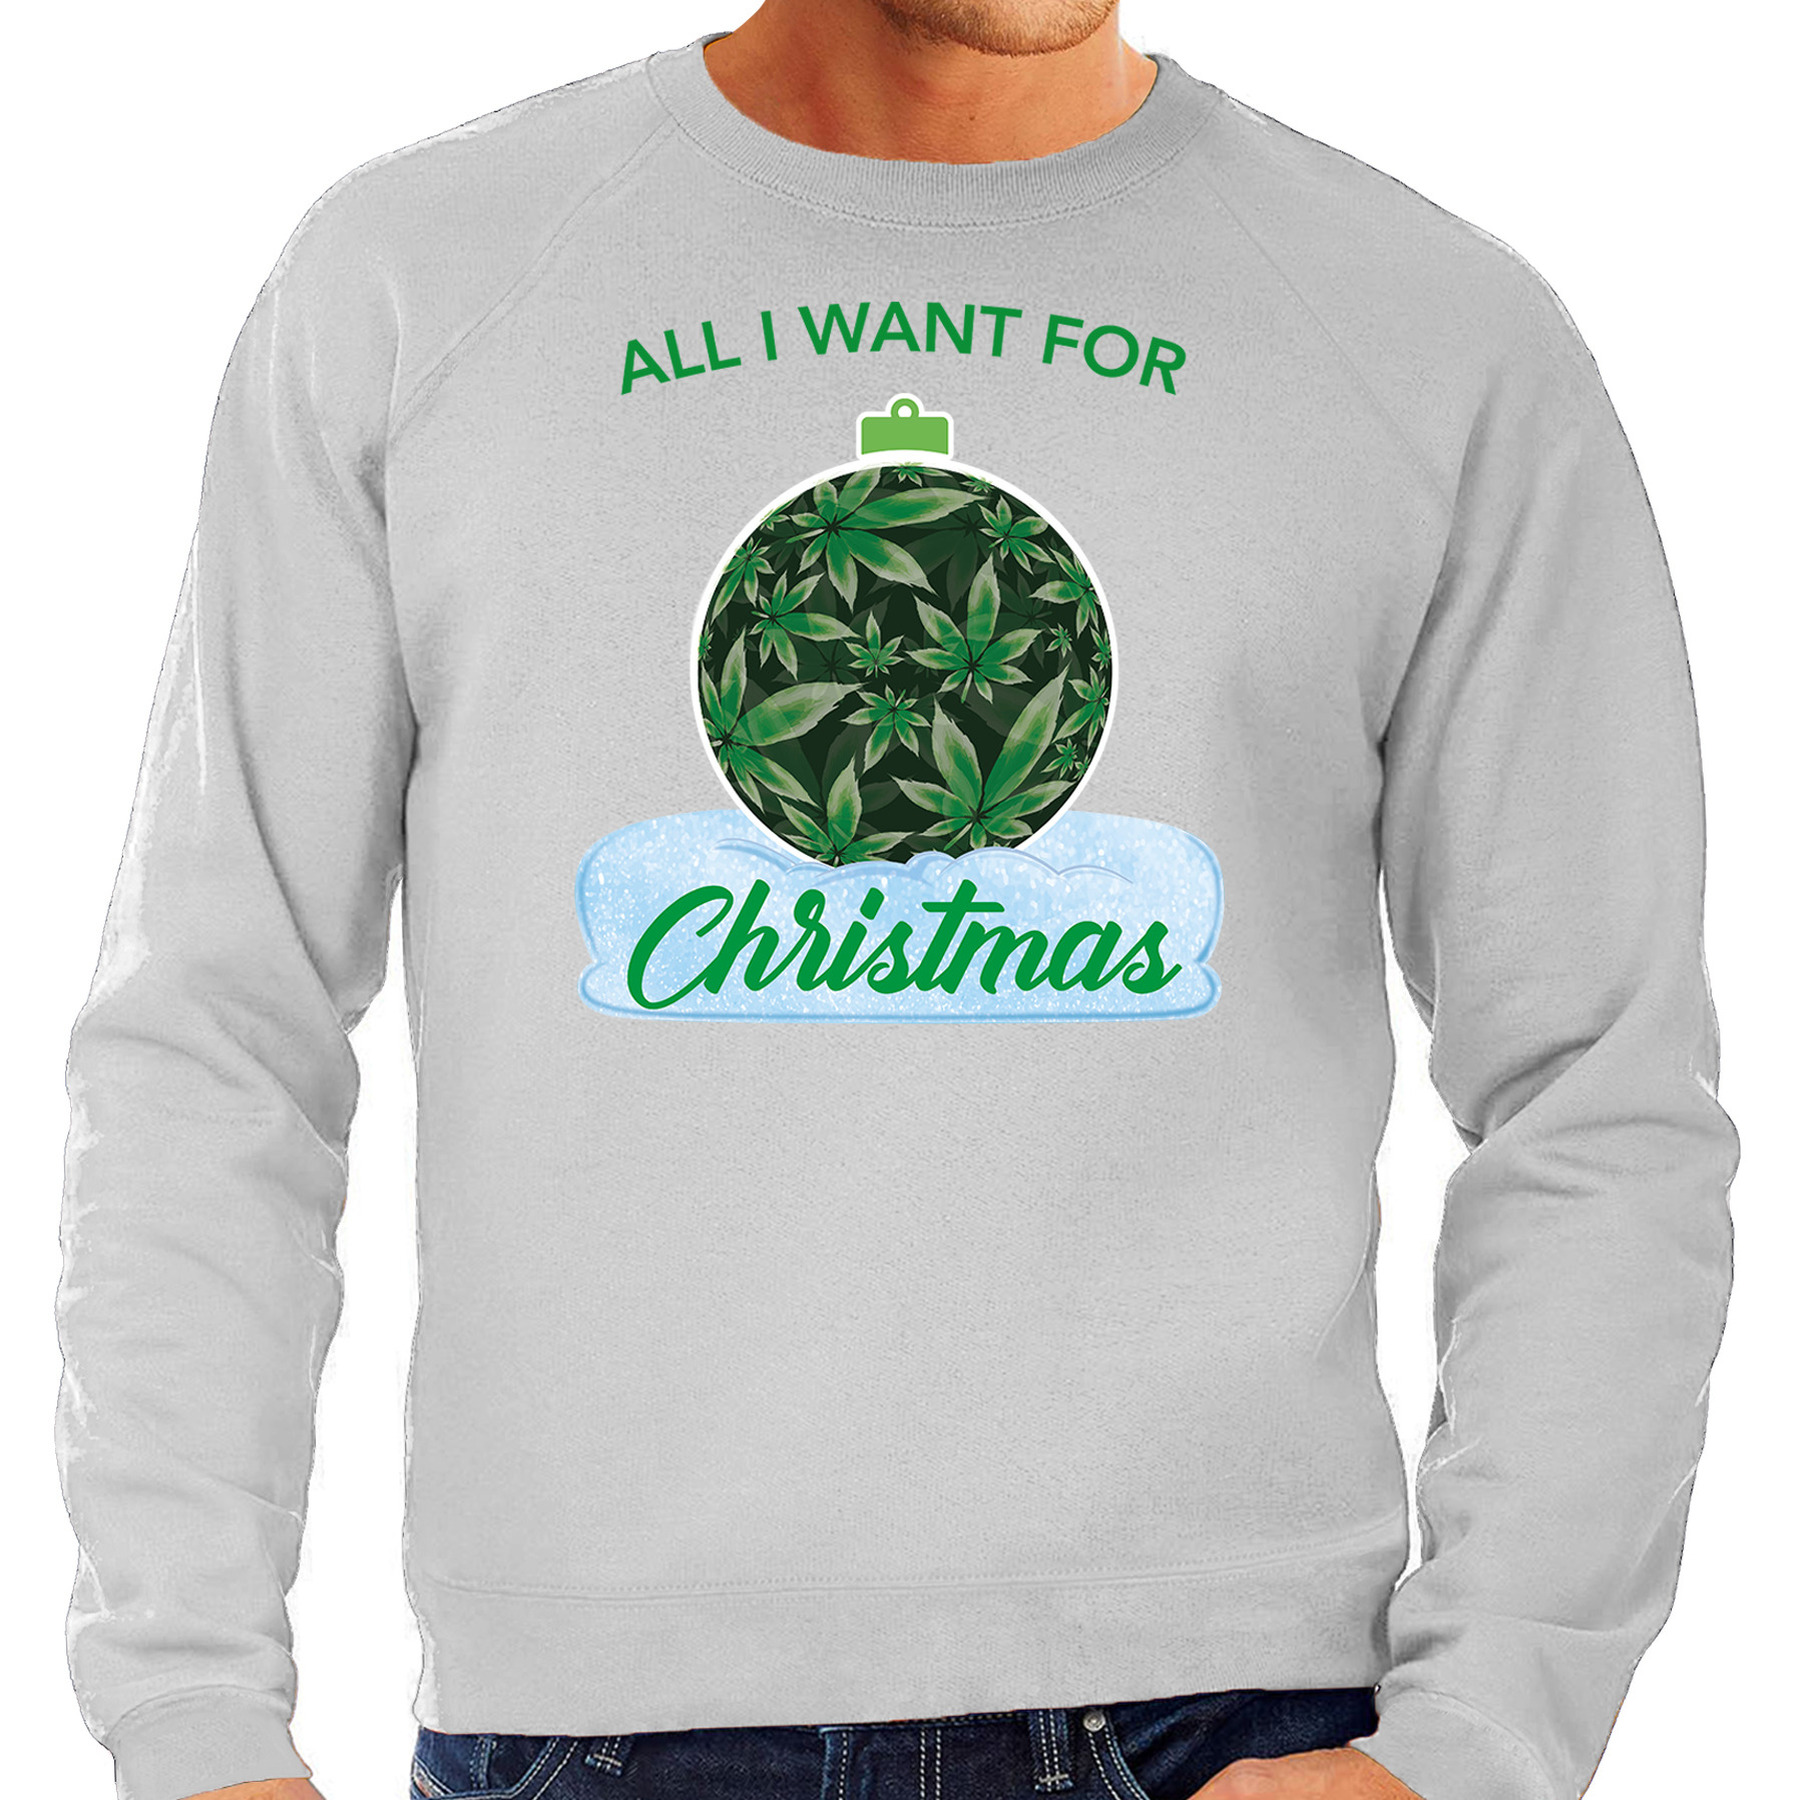 Wiet kerstbal sweater / outfit all i want for christmas grijs voor heren